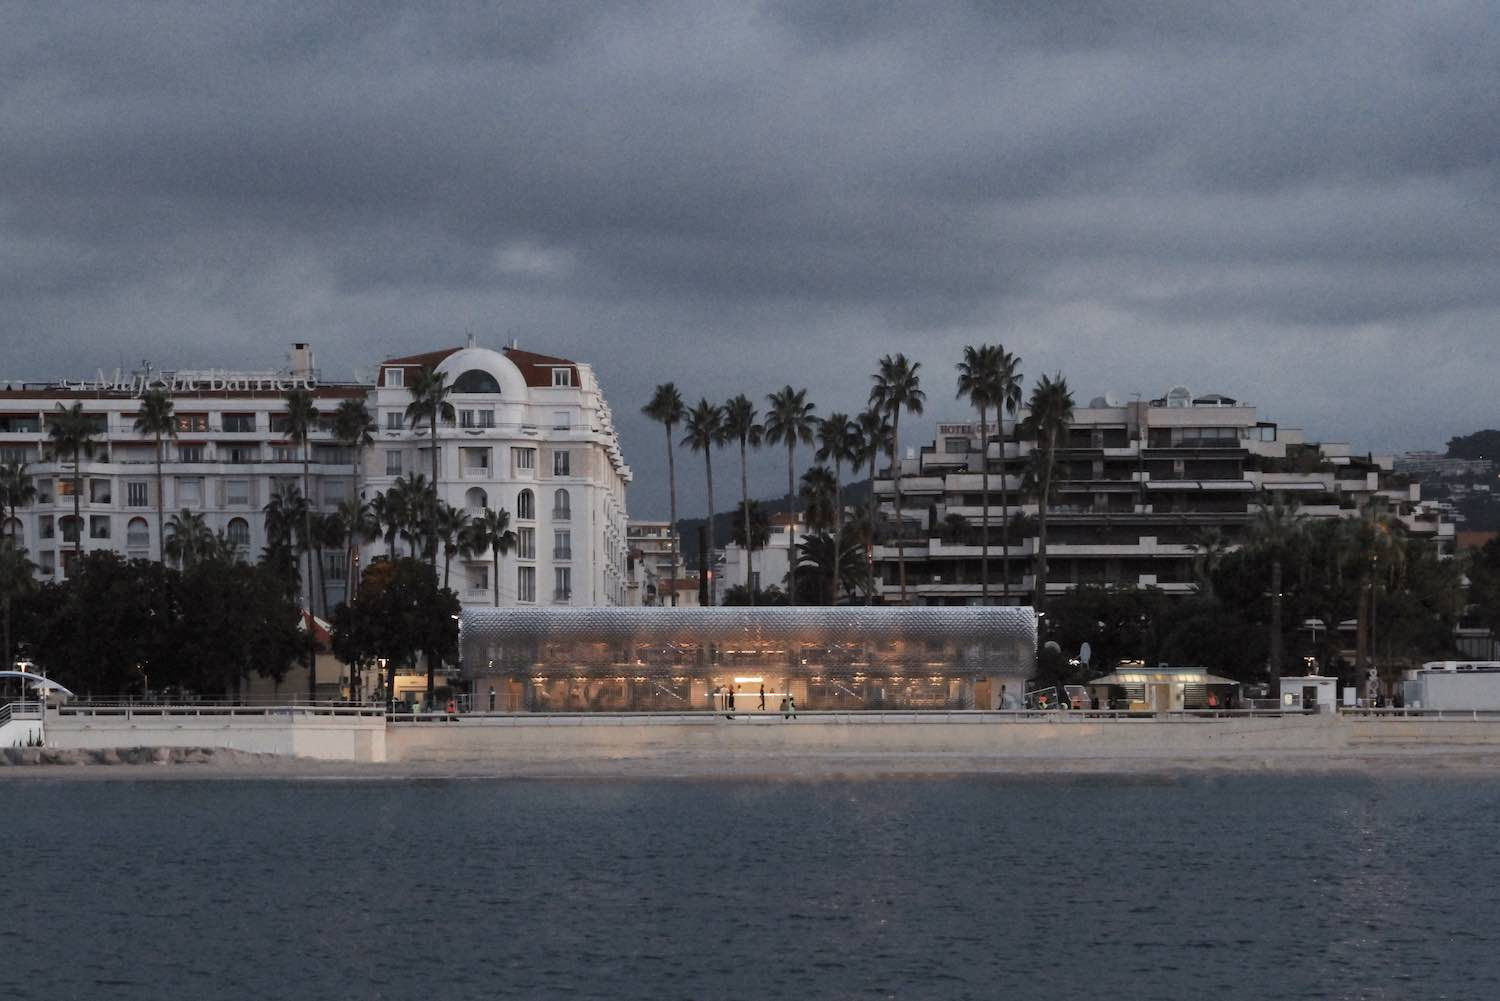 BBC beach-front pavilion in Cannes, France | Universal Design Studio + Giles Miller Studio